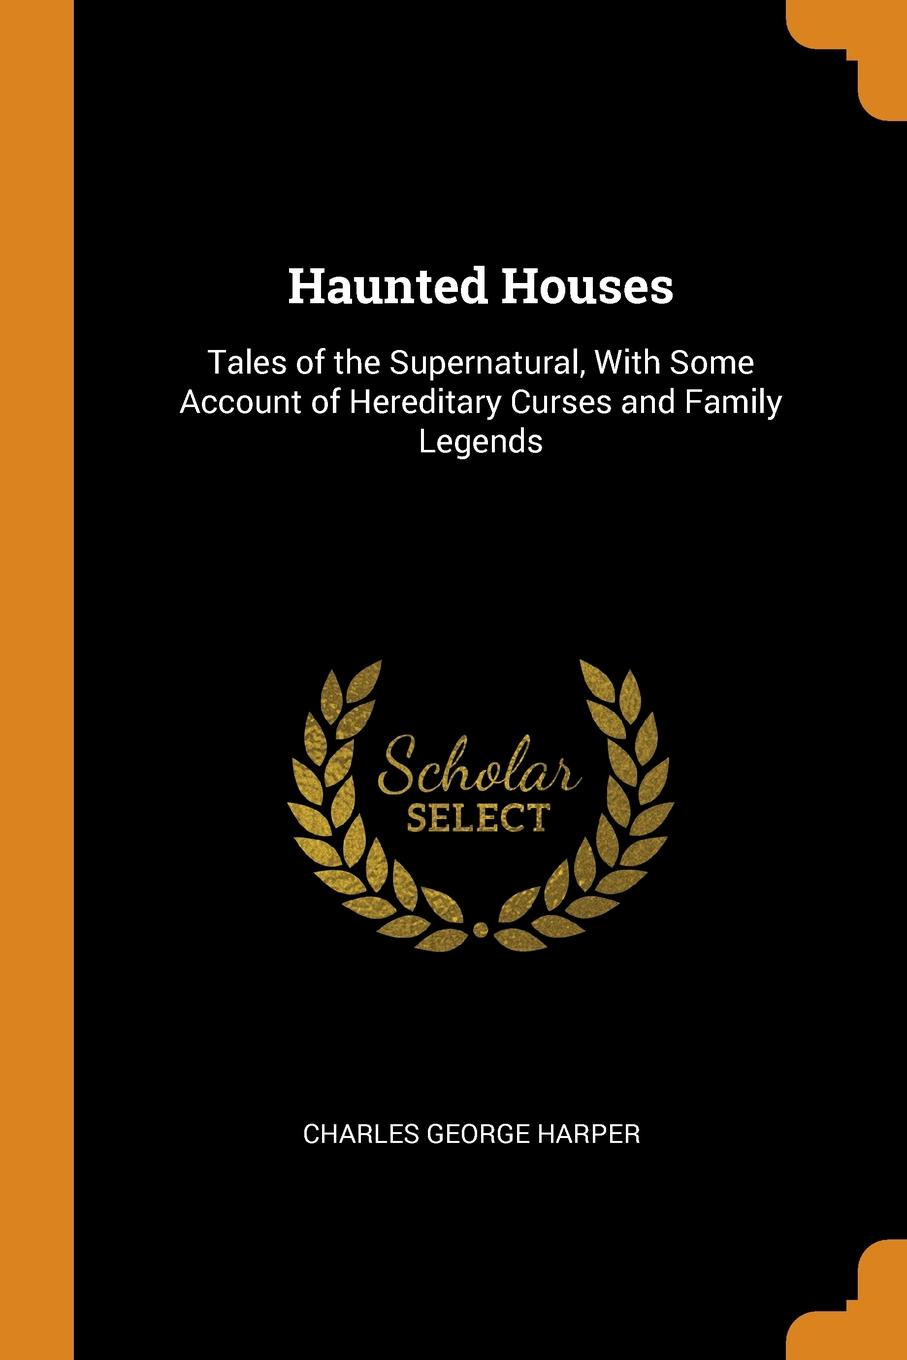 Charles George Harper. Haunted Houses. Tales of the Supernatural, With Some Account of Hereditary Curses and Family Legends